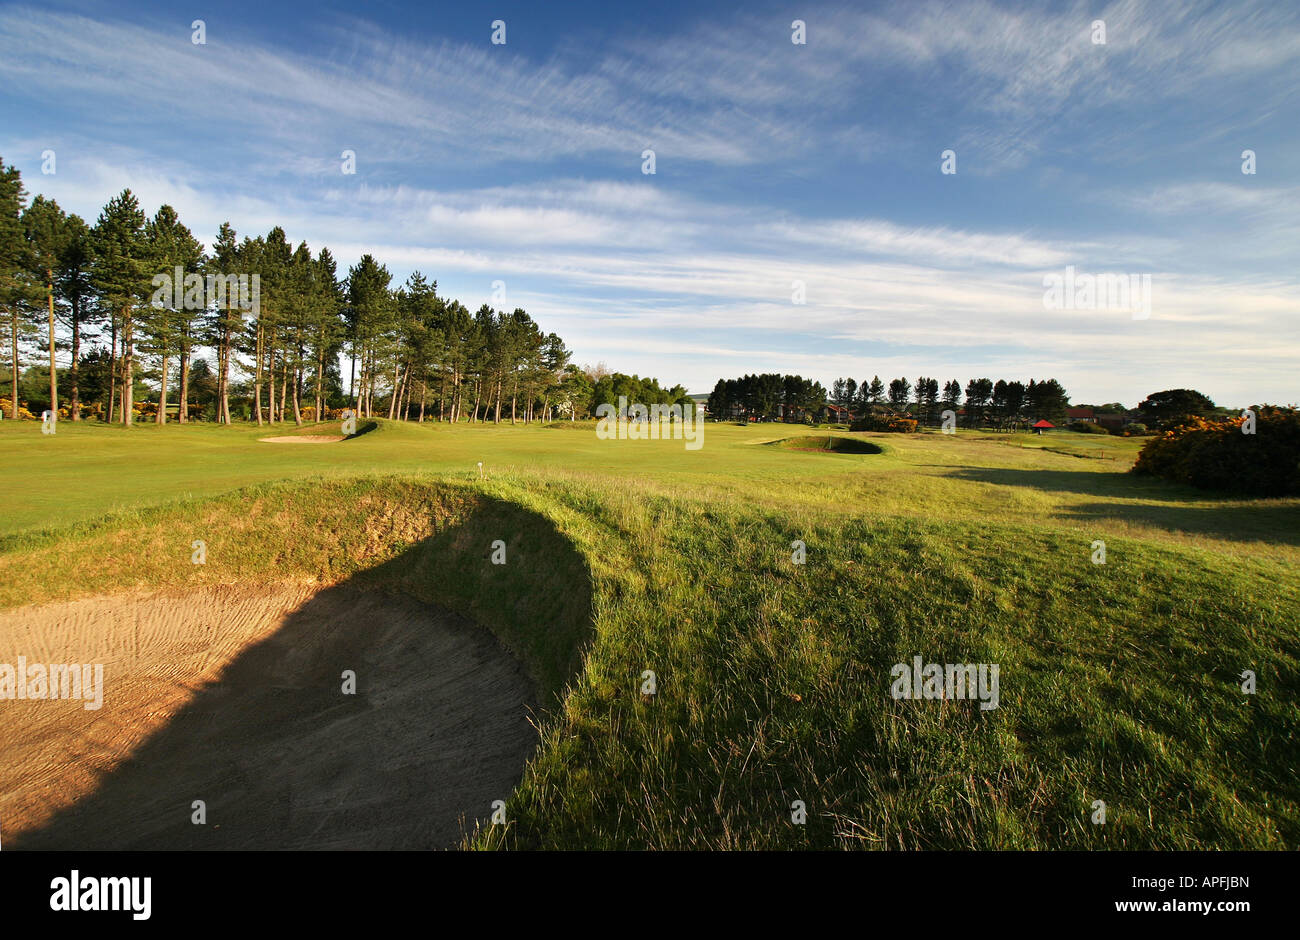 Carnoustie Championship Golf Links 9th Hole - Stock Image